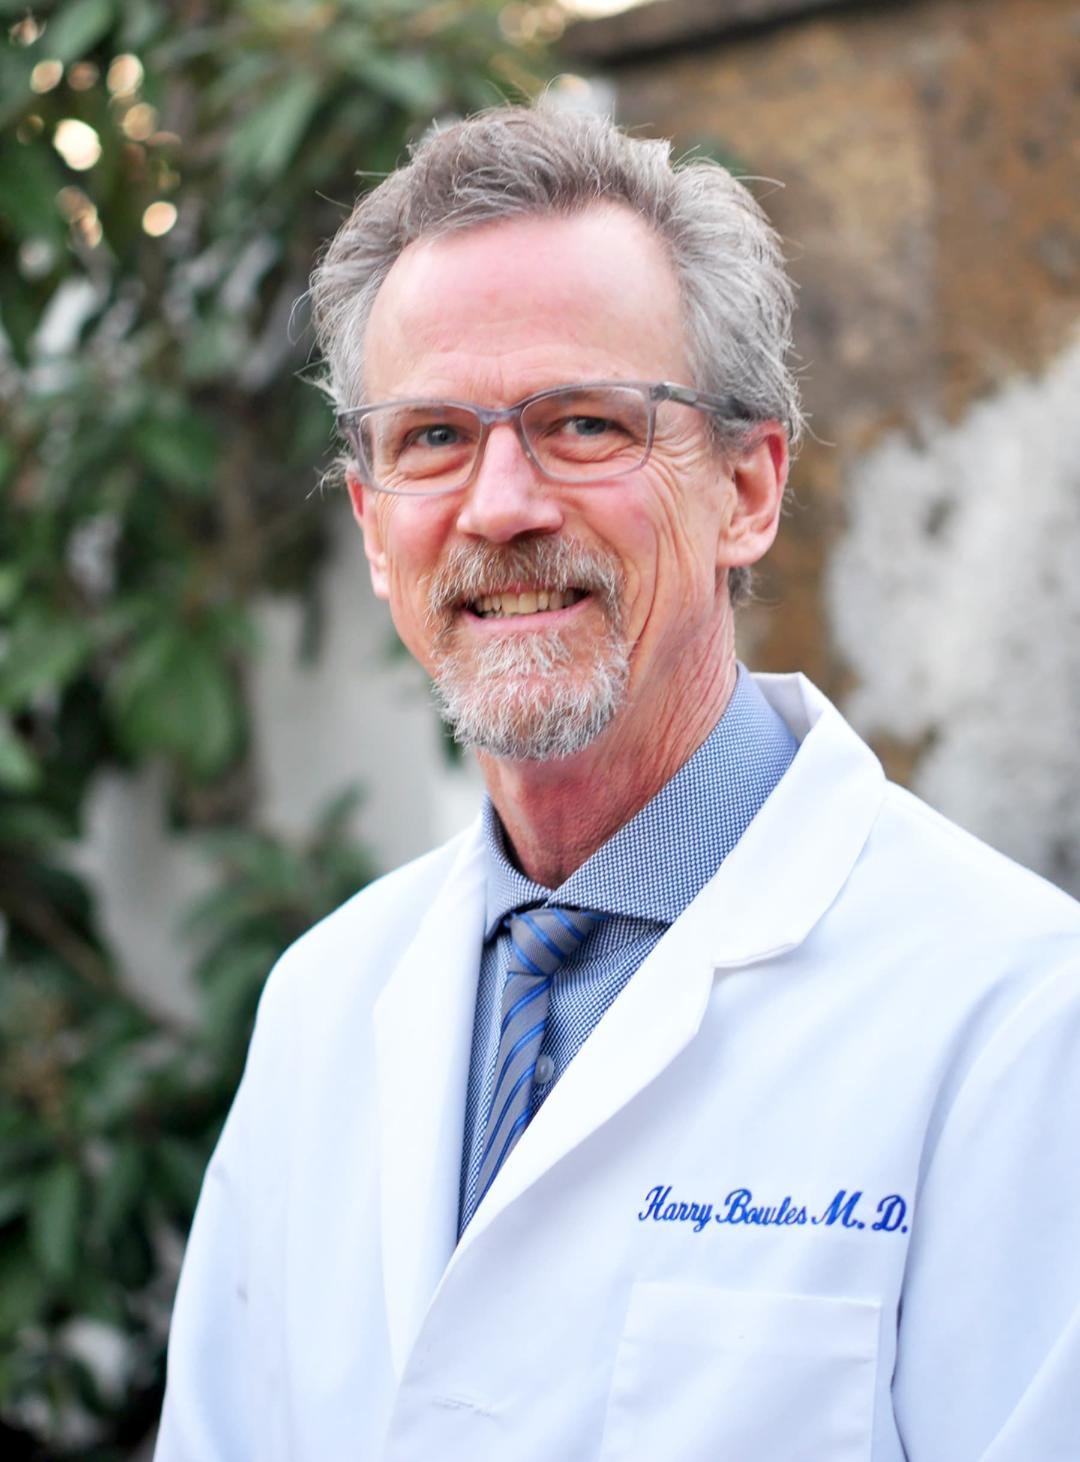 Phil Simon Clinic Tanzania Project receives $10,000 gift from Huntington Hospital in honor of Dr. Harry Bowles